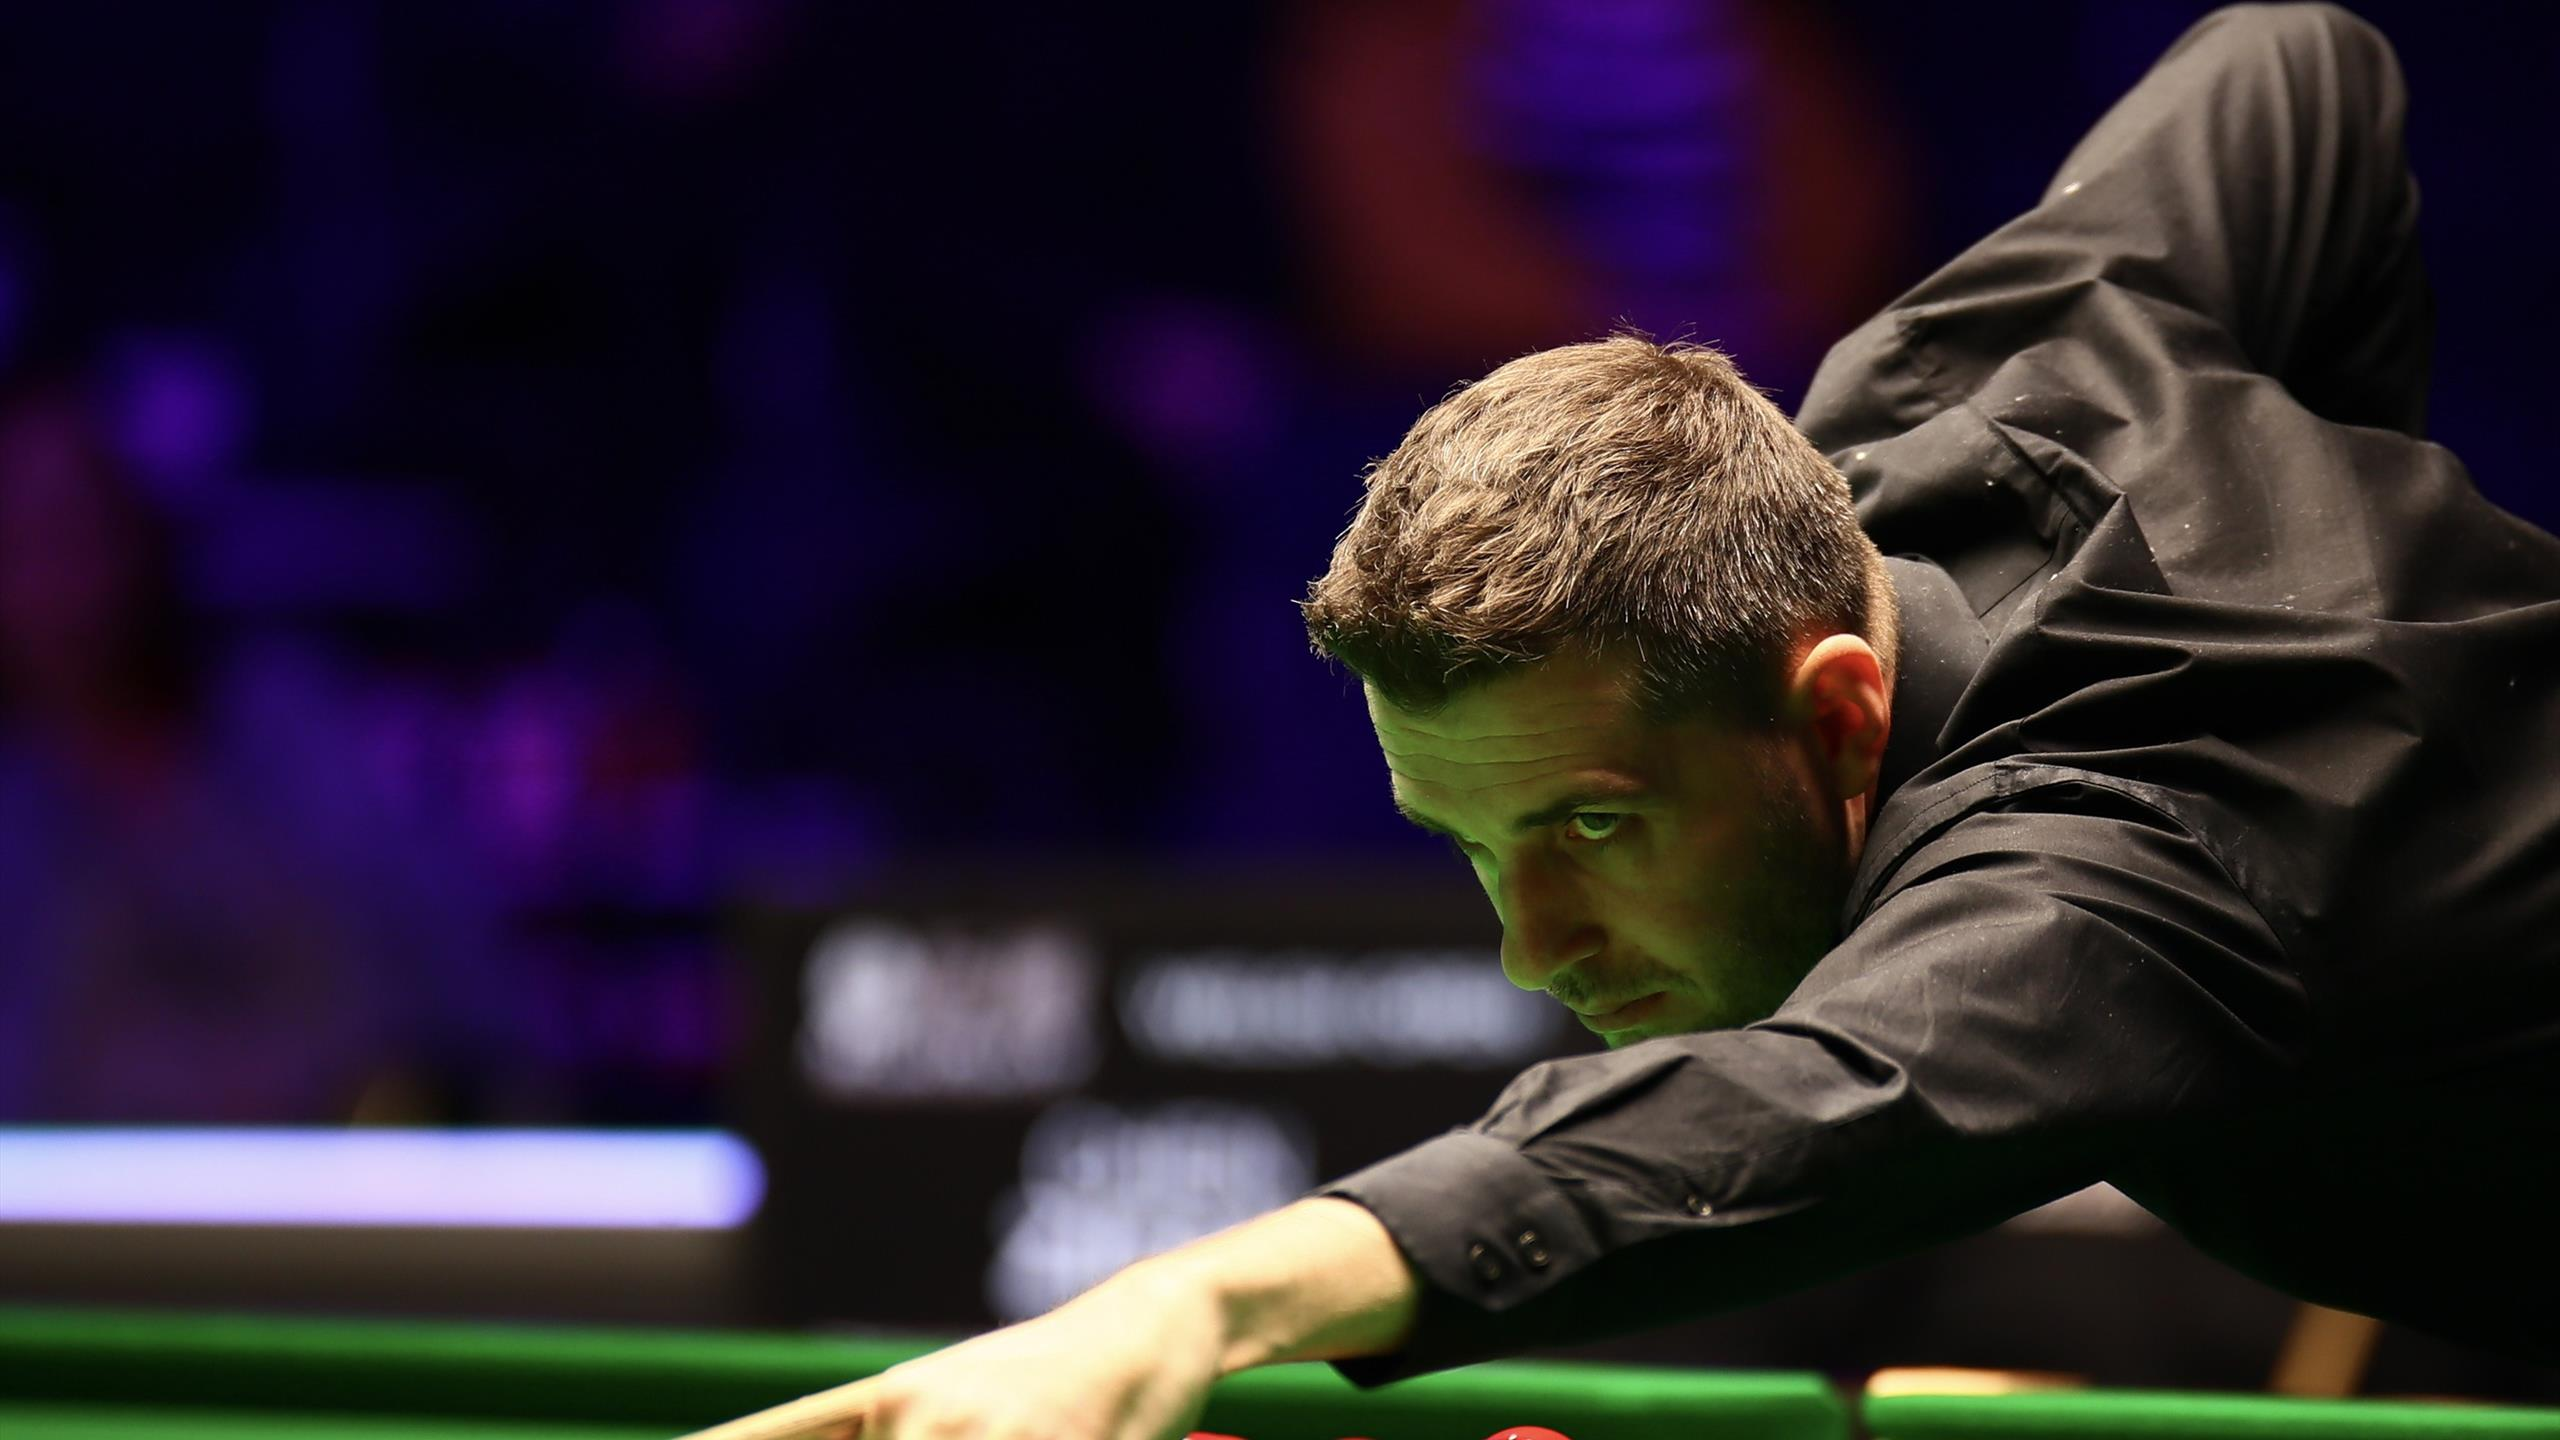 Masters Snooker 2021 Oh No It S Come Off Will Tip Drama Damage Mark Selby S Hopes Eurosport